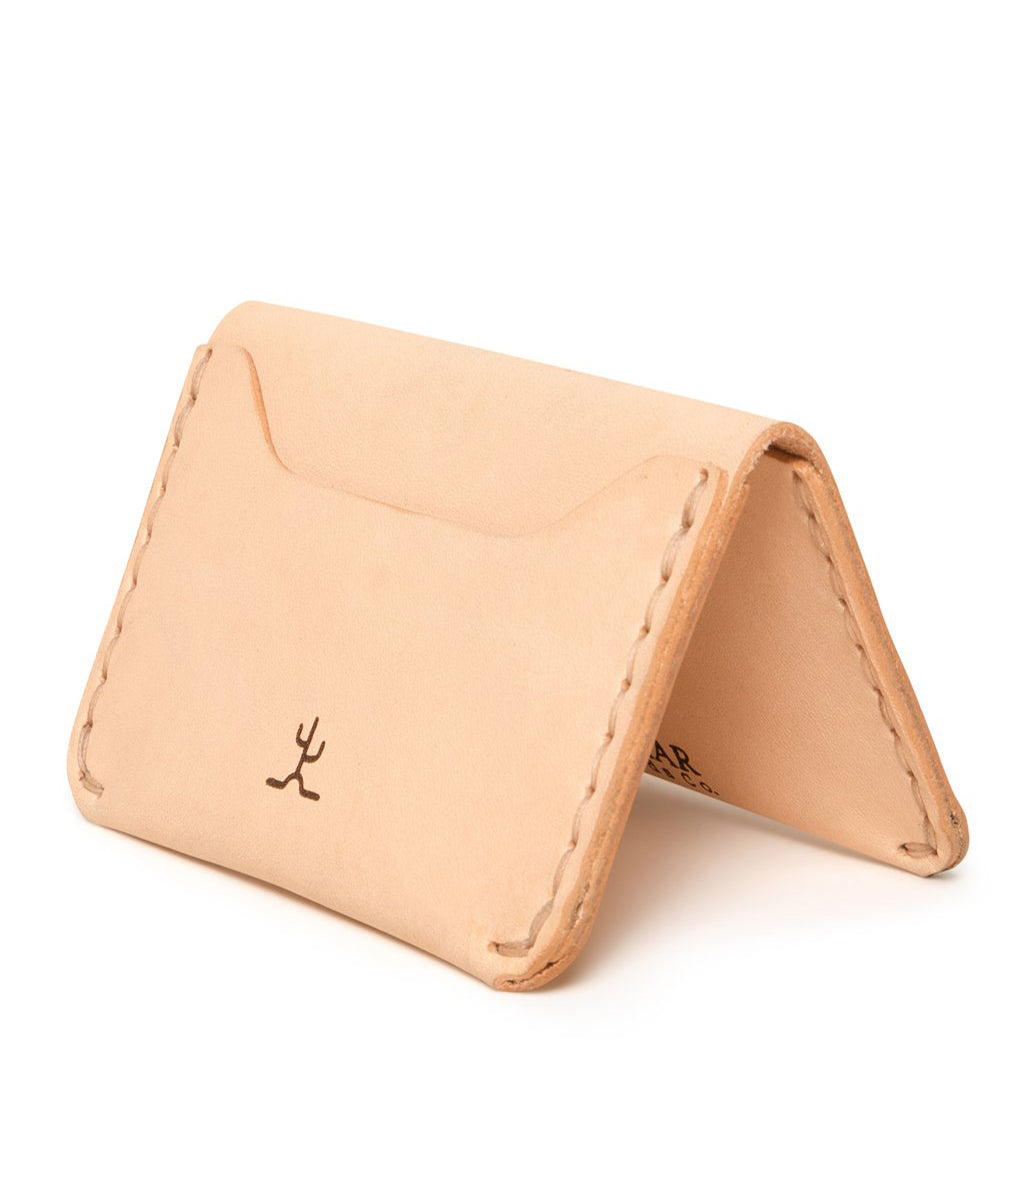 No. 03 Wallet Raw Veg Tan